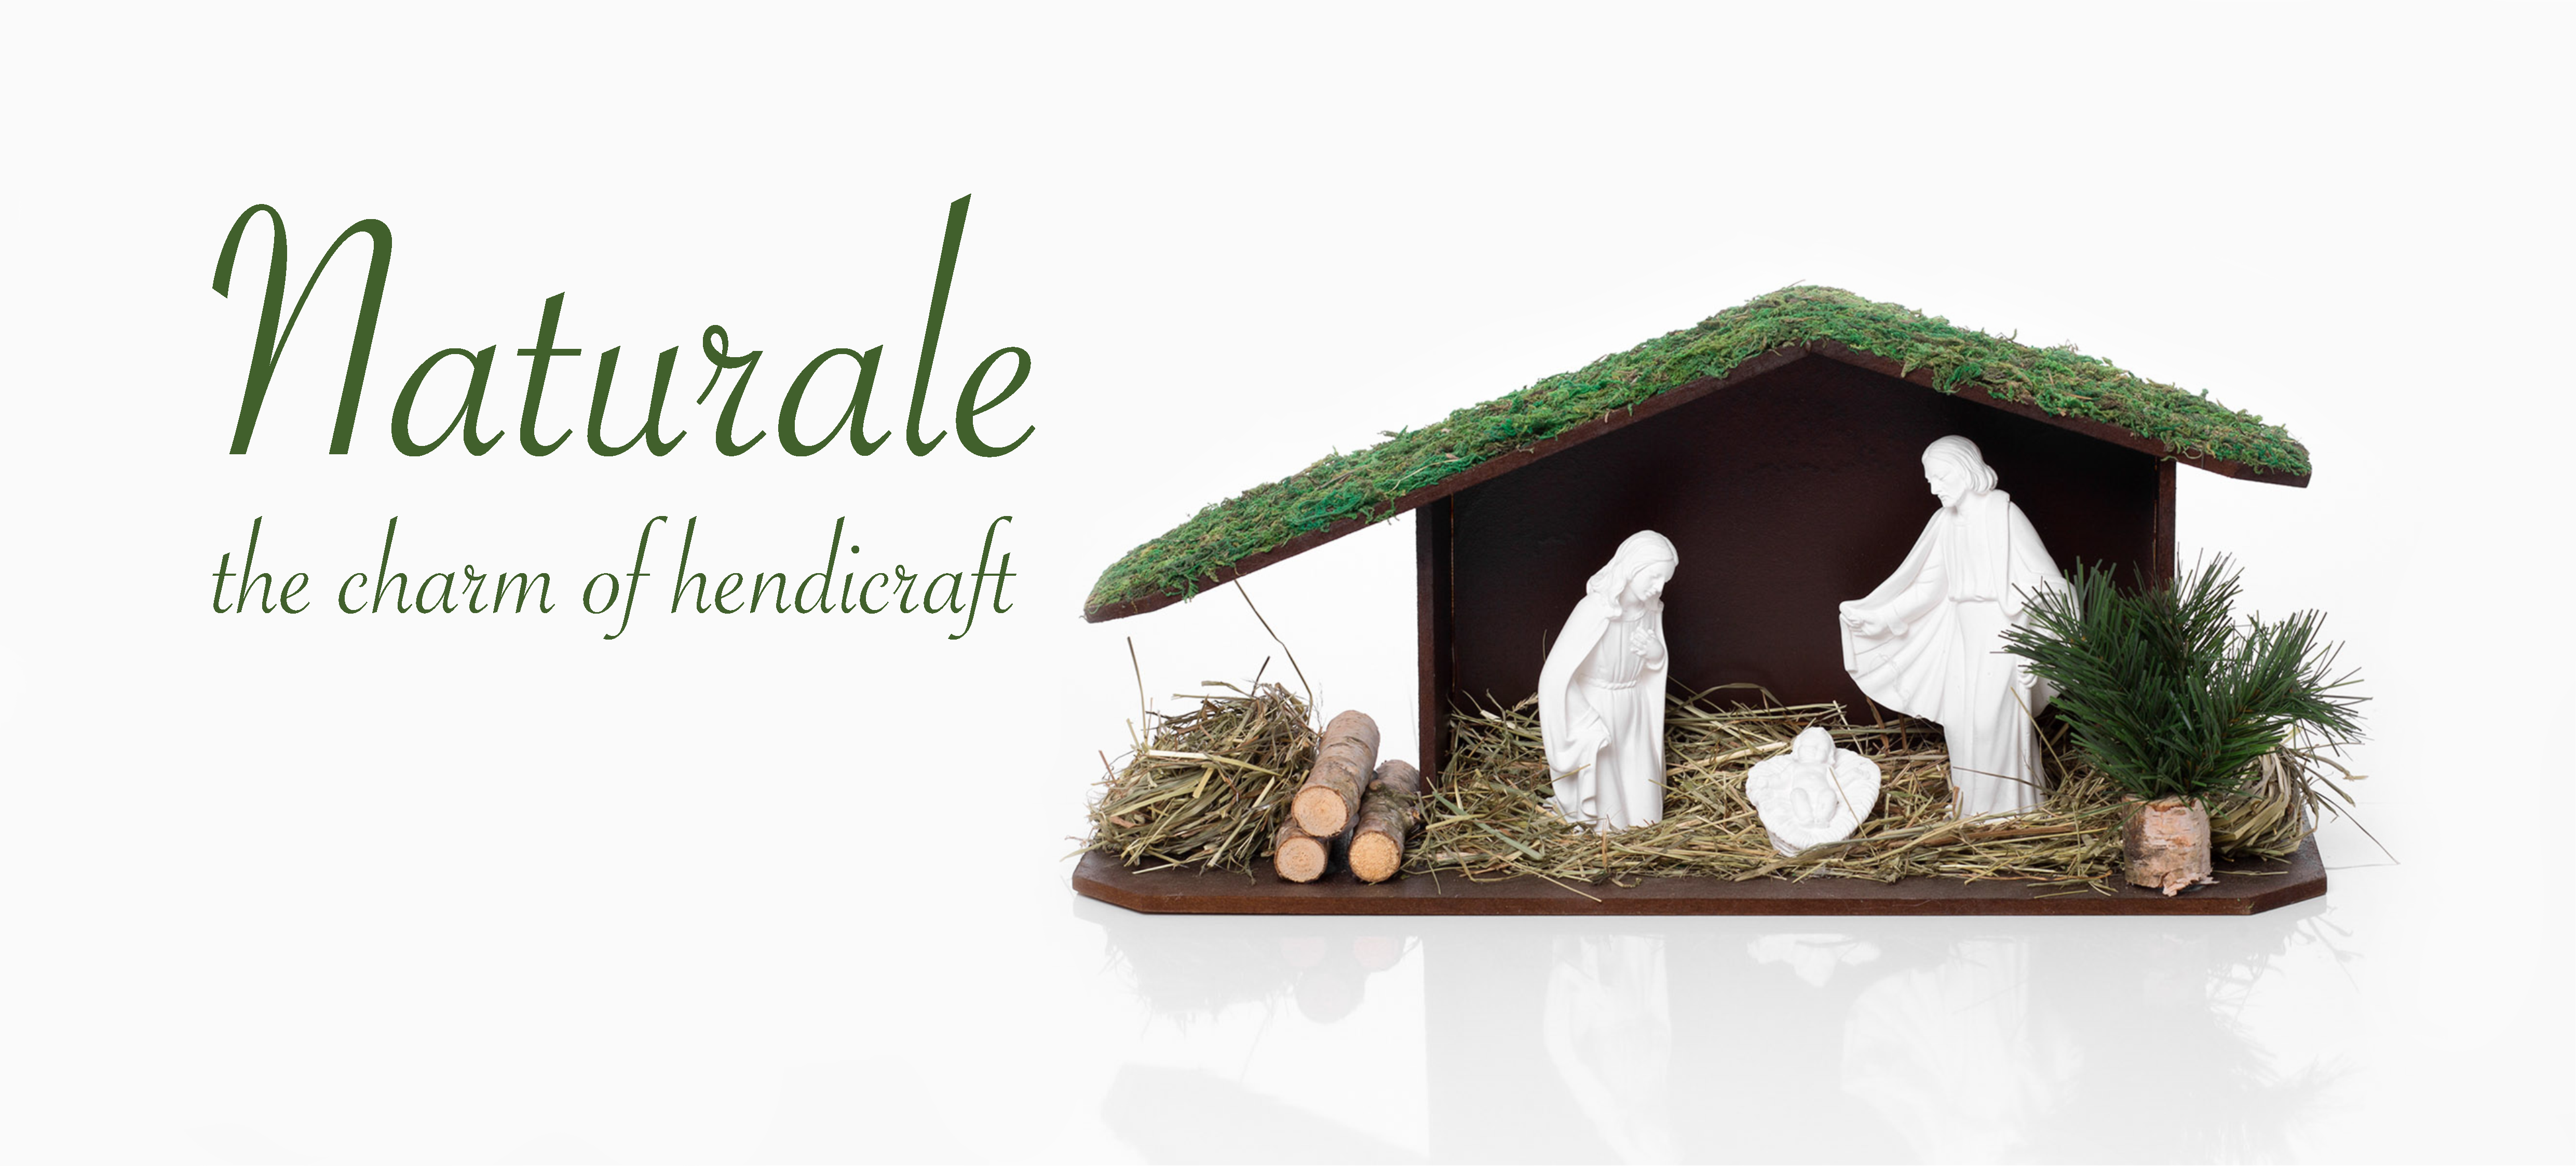 Nativity Sets Naturale